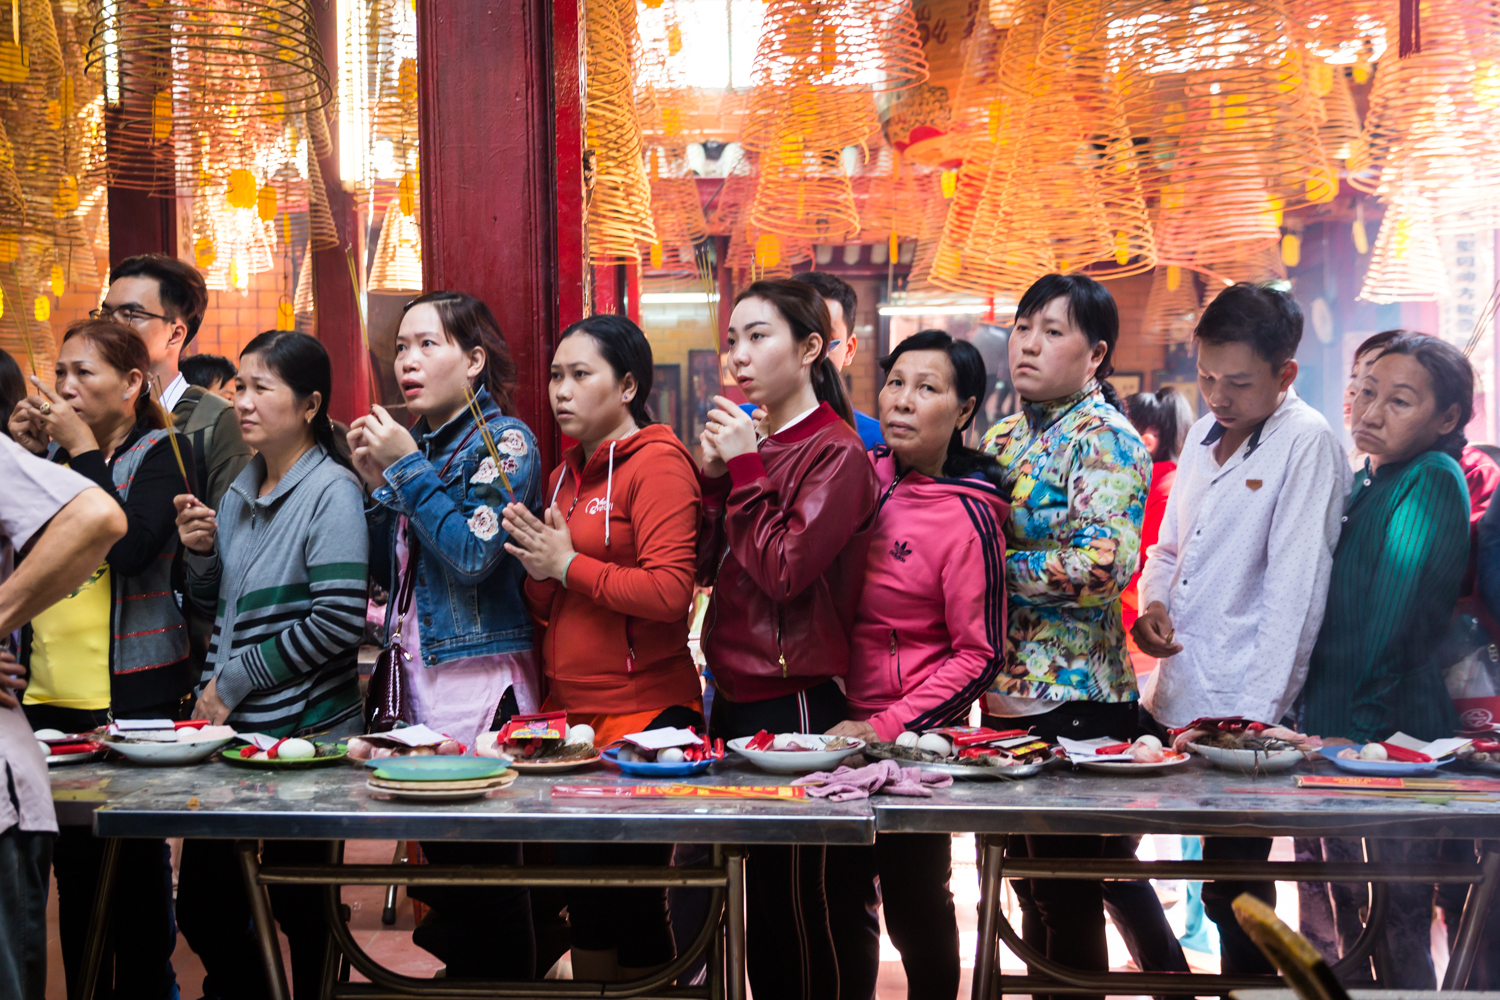 worshippers-temple-chinese-new-year-can-tho-vietnam.jpg